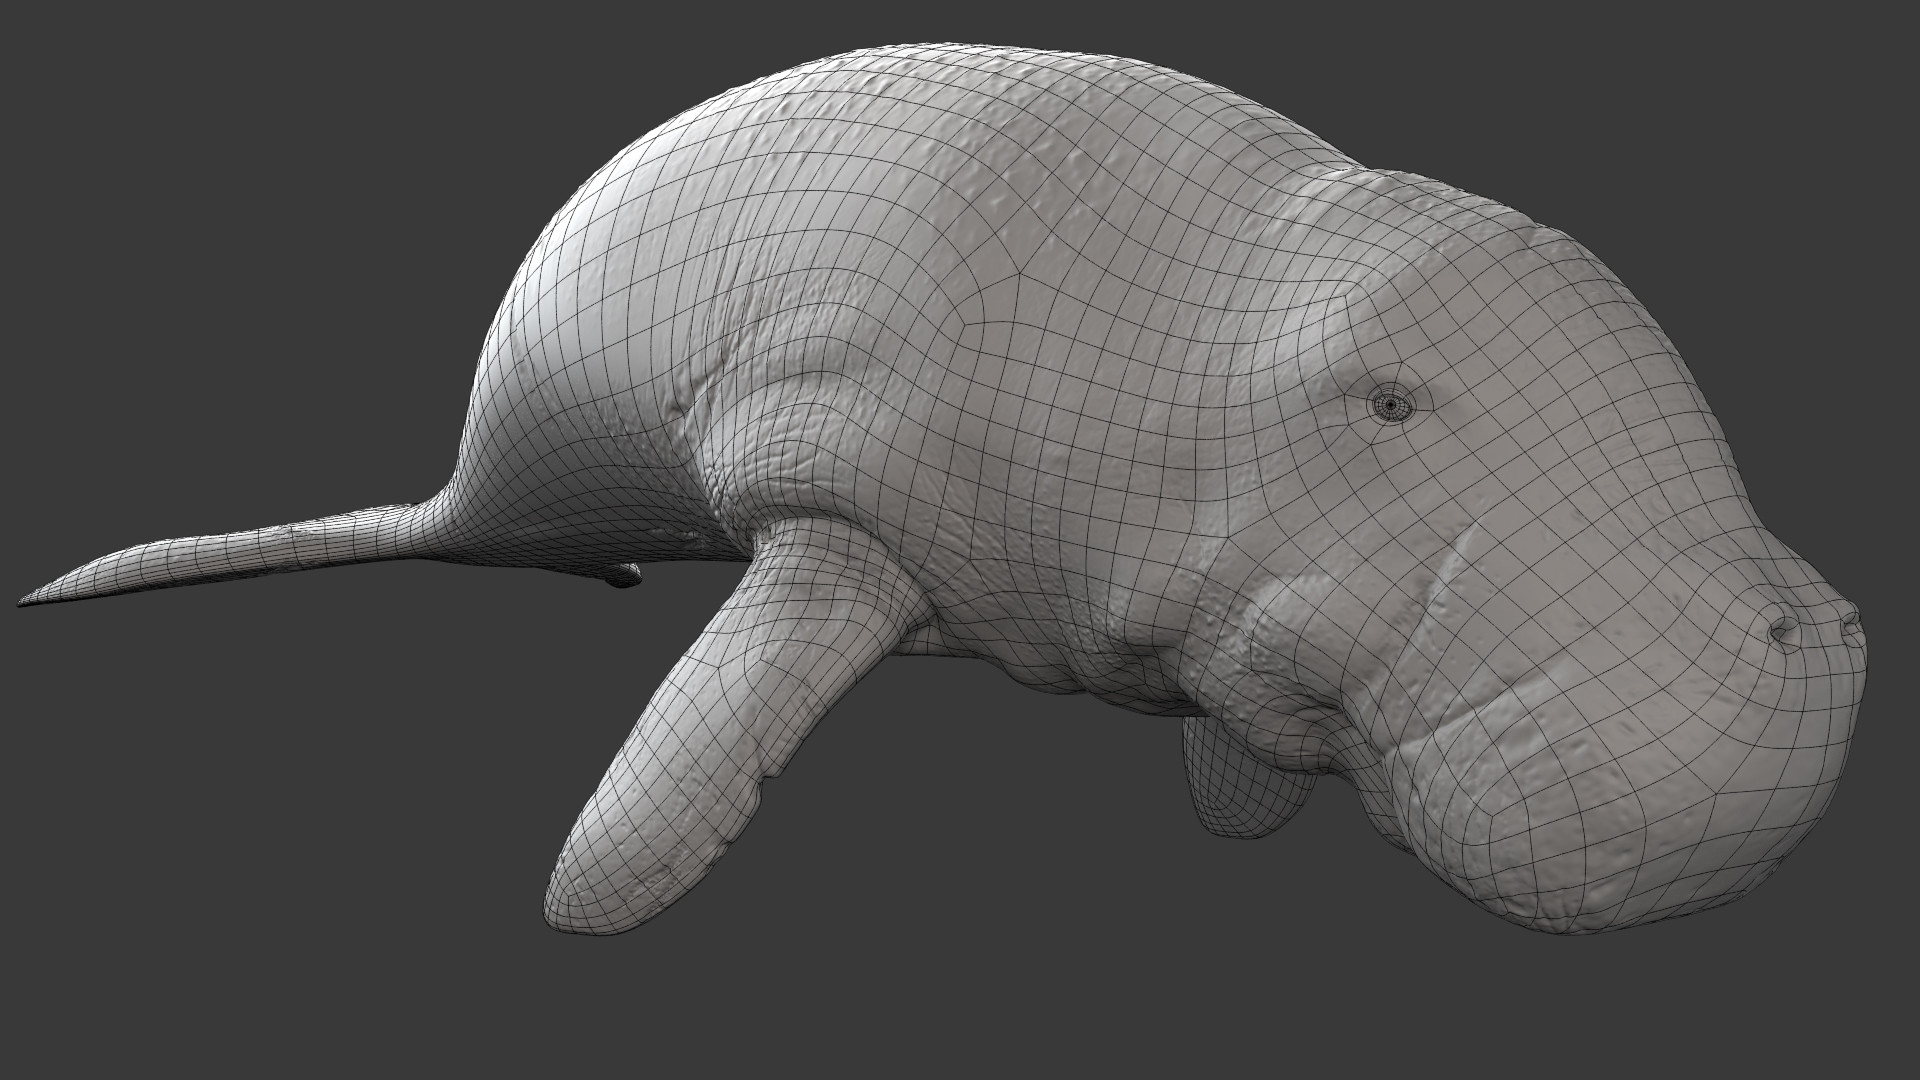 Carly glover dugong01 greywireframe